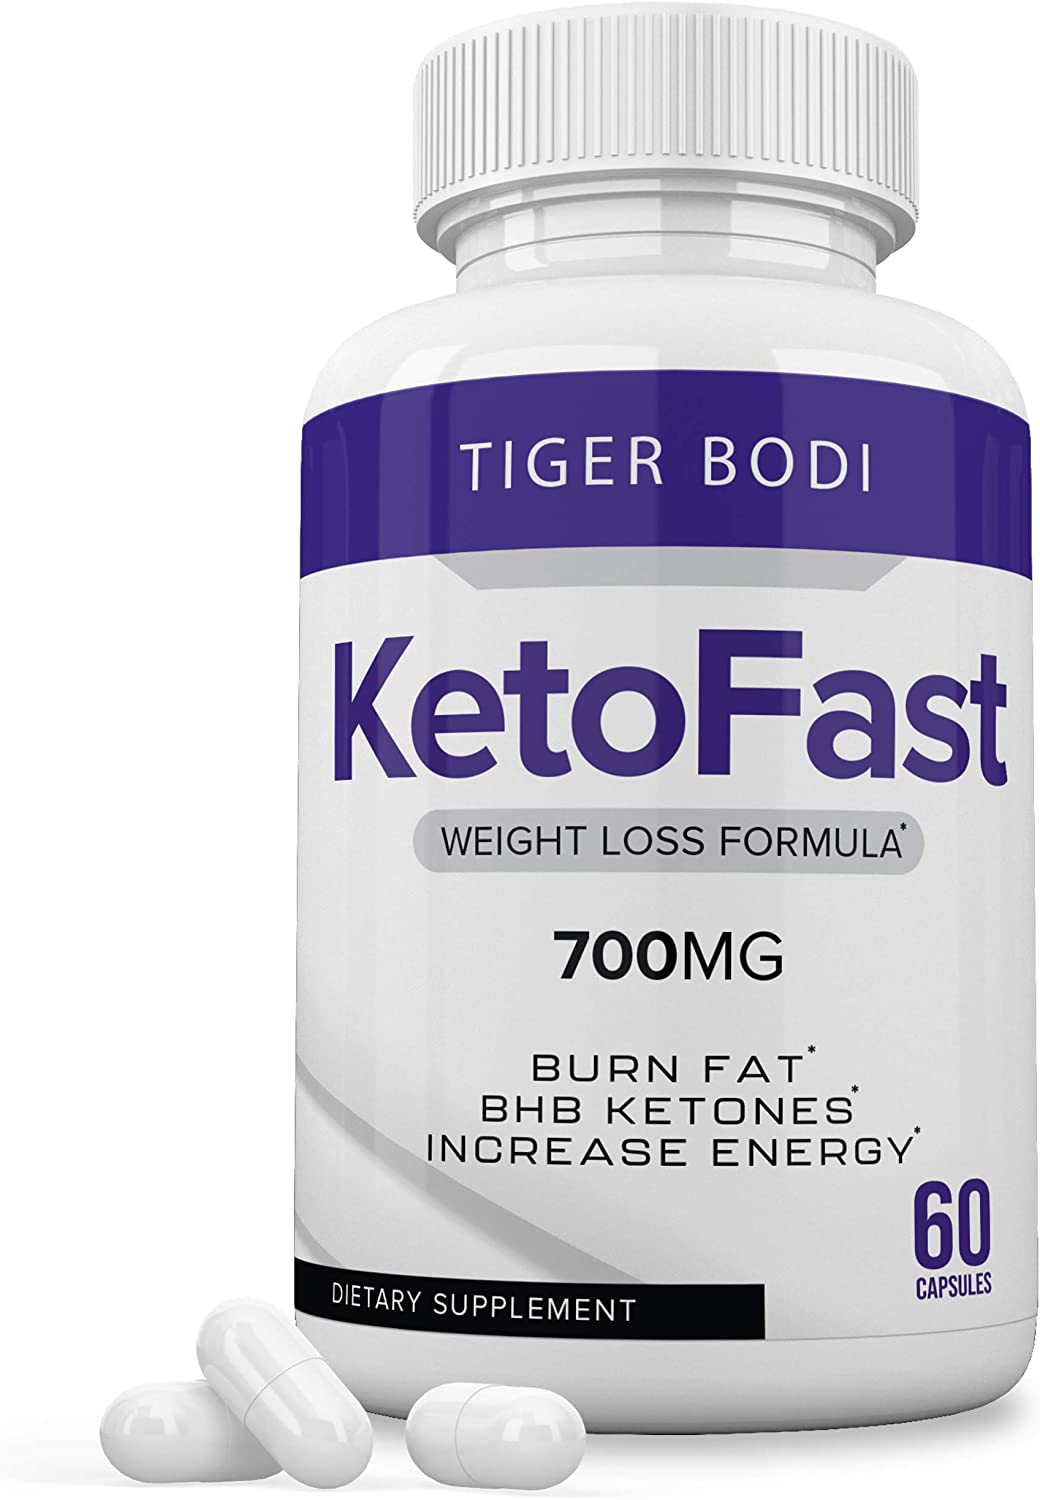 Keto Fast Pills, Epic Keto Fast Burn Ultra Weight Management Capsules 700 mg, Pure Keto Fast Supplement for Energy, Focus - BHB Ultra Boost Exogenous Ketones for Rapid Ketosis for Men Women